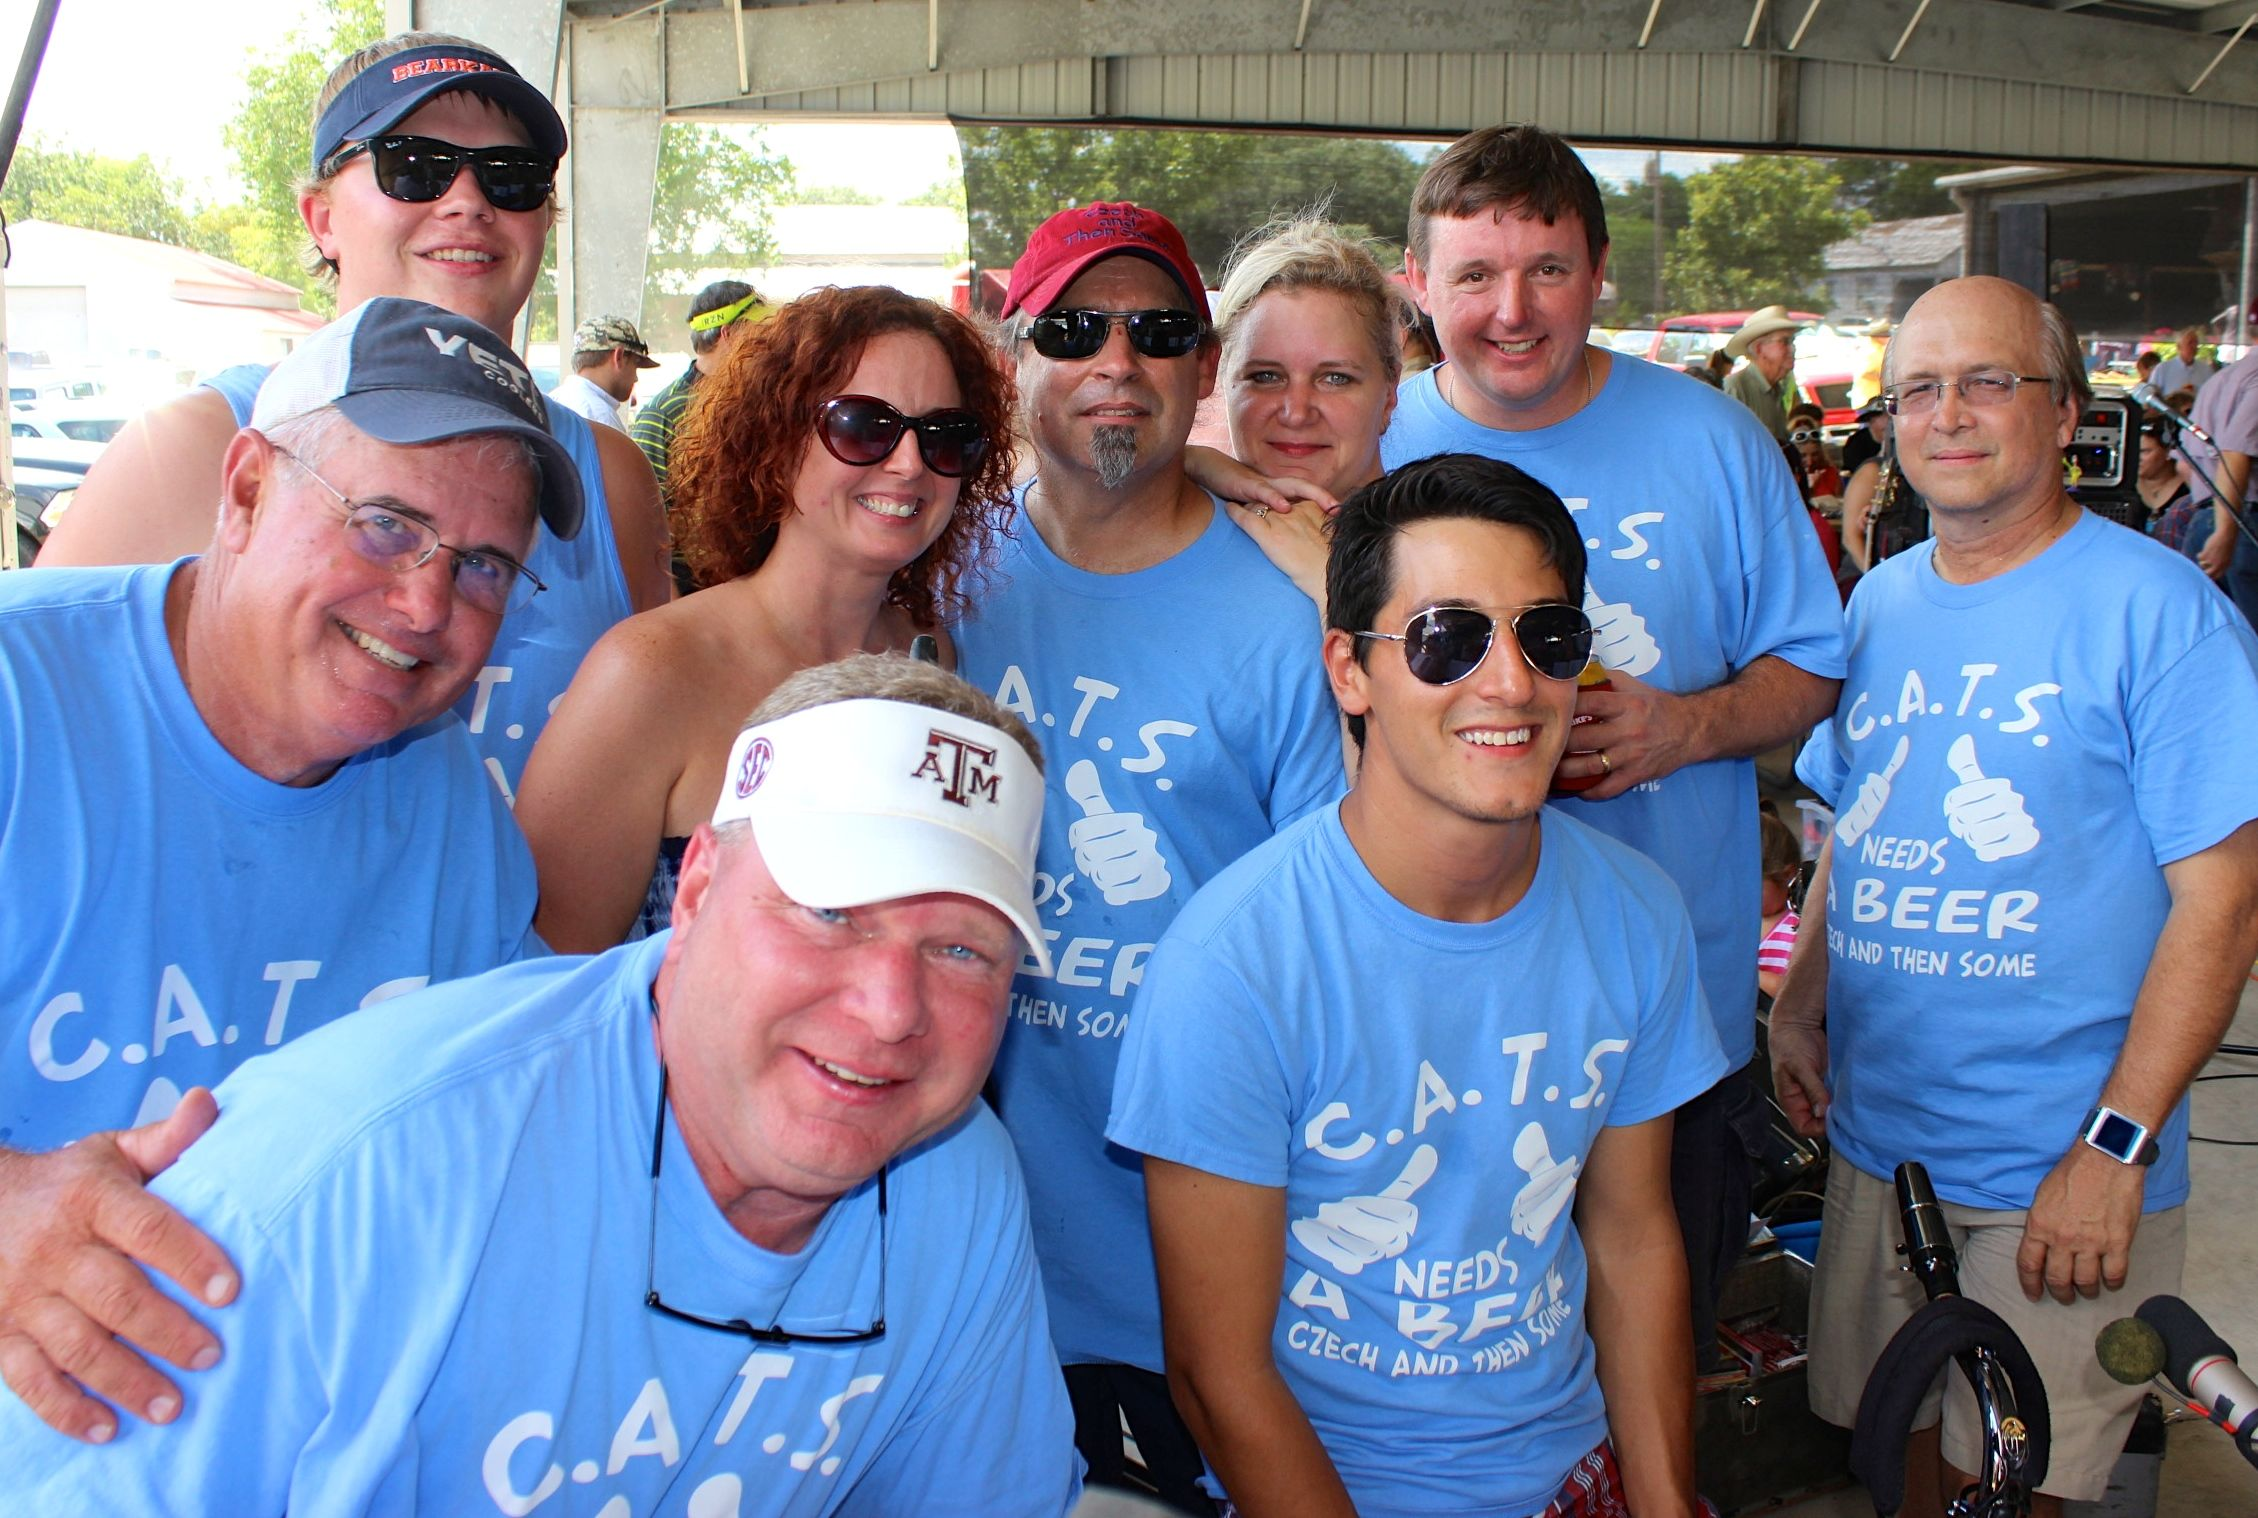 CATS at Praha Picnic - Josh Z, Sonny Patalik, Jennifer Slovak, John Schumacher, Michelle & David Slovak, Dave Czarnek, DZ, Zeke Martinez/ Gary McKee photo